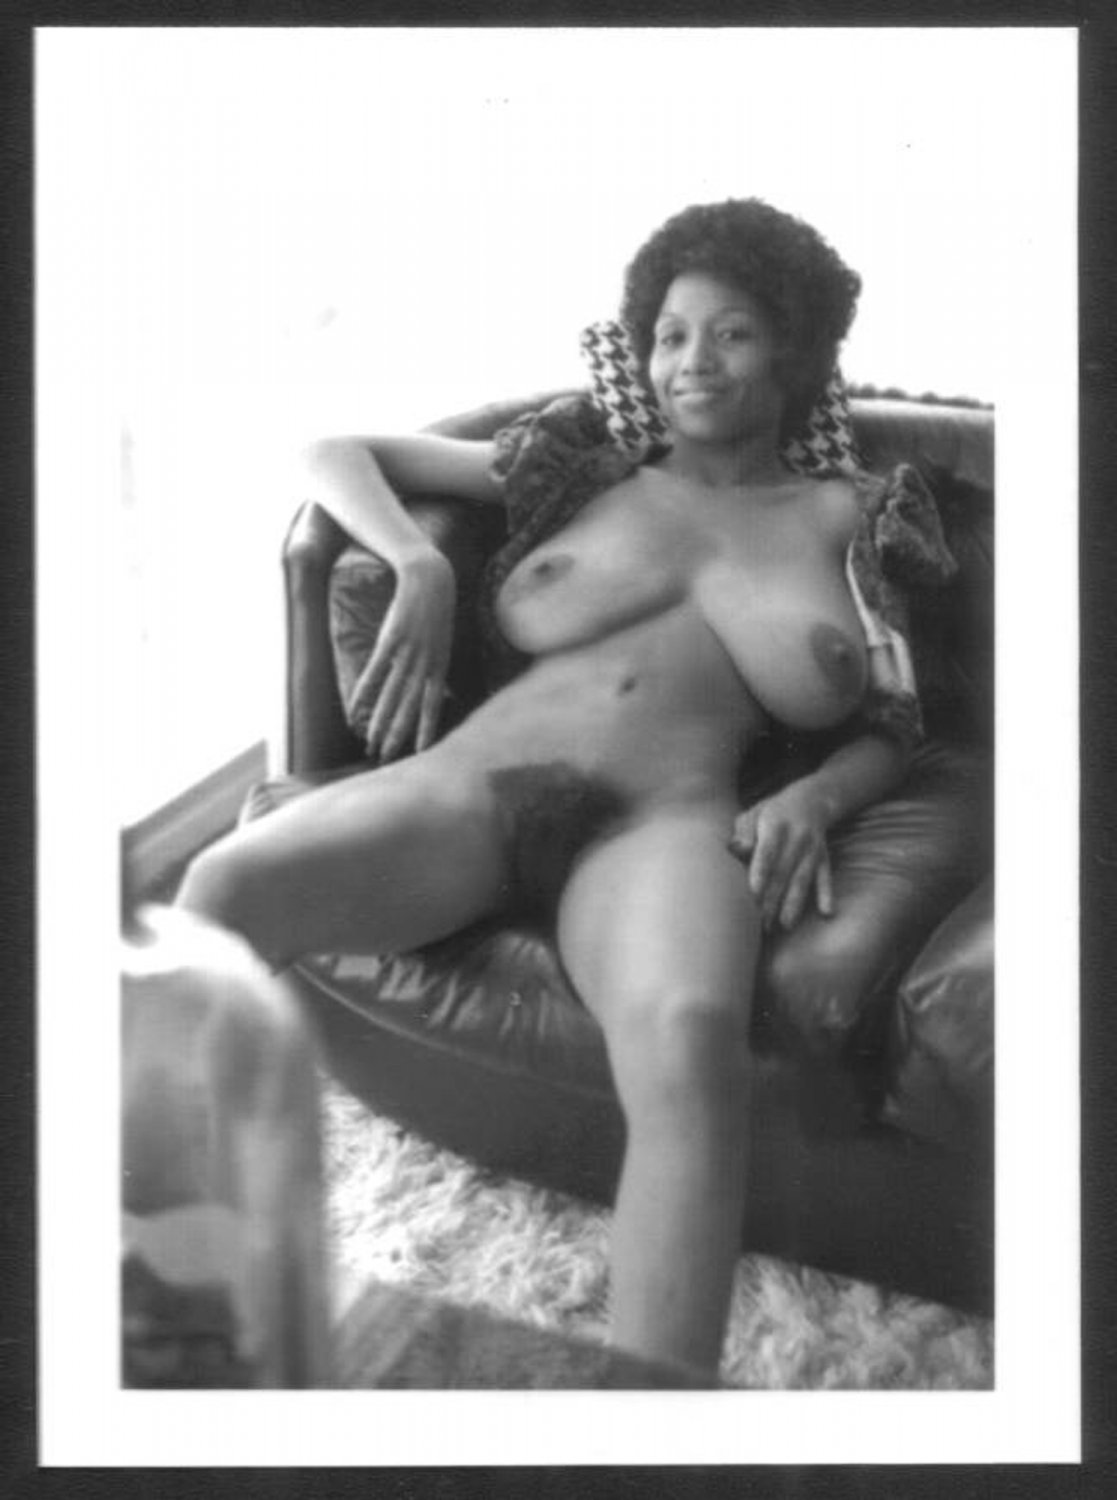 EBONY SYLVIA MCFARLAND TOPLESS NUDE HUGE BREASTS HAIRY PUSSY NEW REPRINT 5X7 SM-96